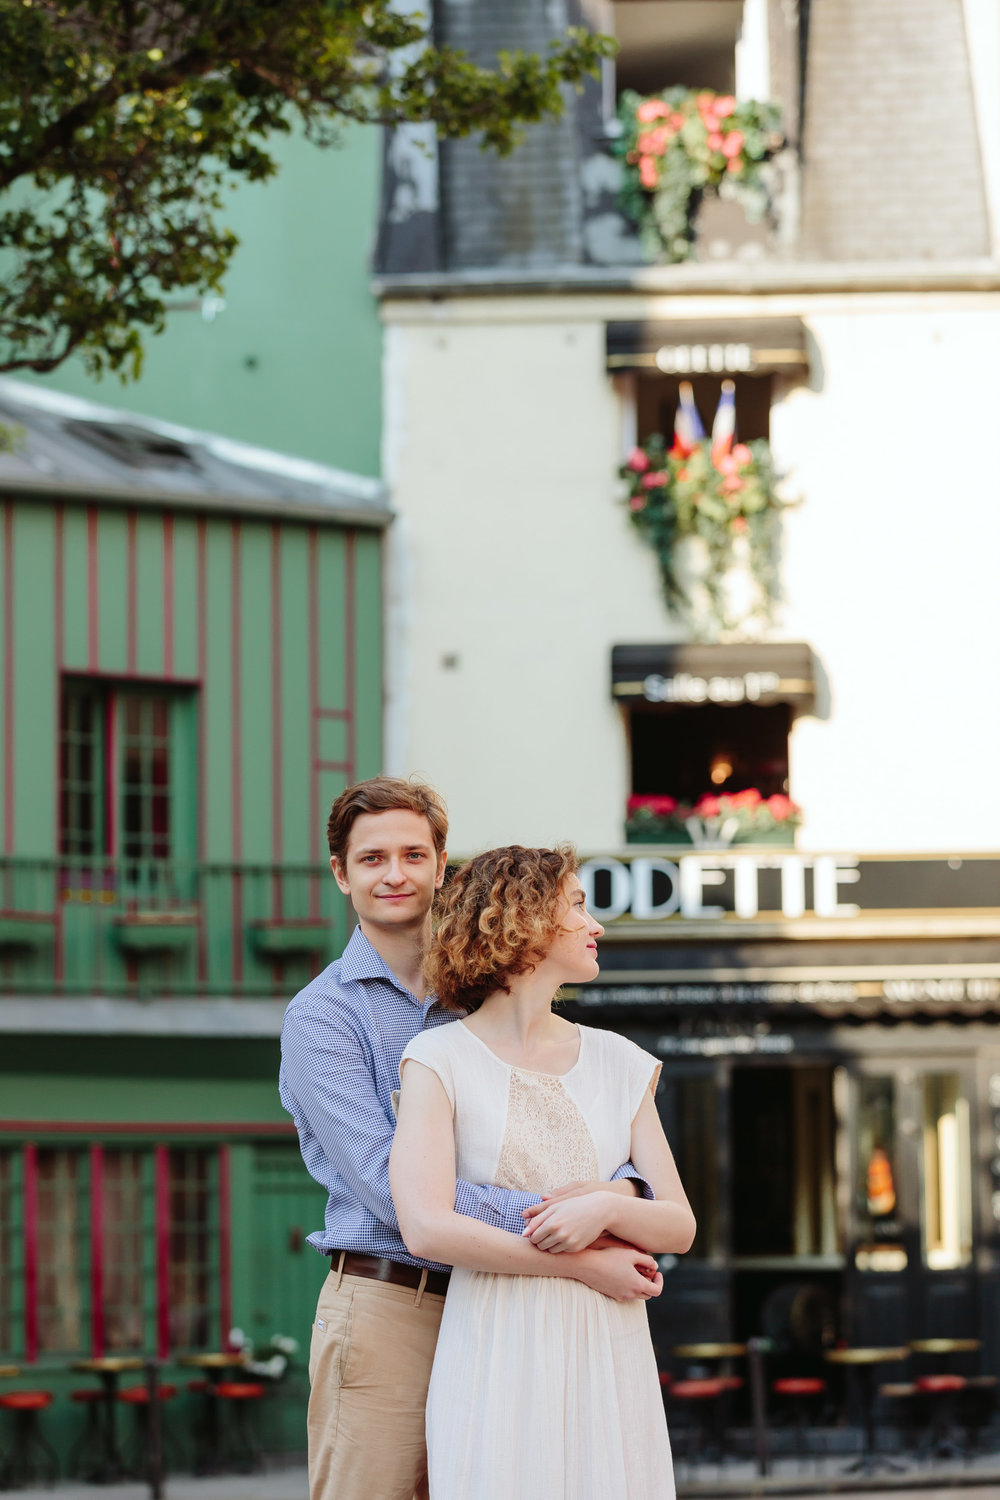 Couple hugging next to Cafe Odette in Saint Germain captured by Paris Photographer Federico Guendel IheartParisFr